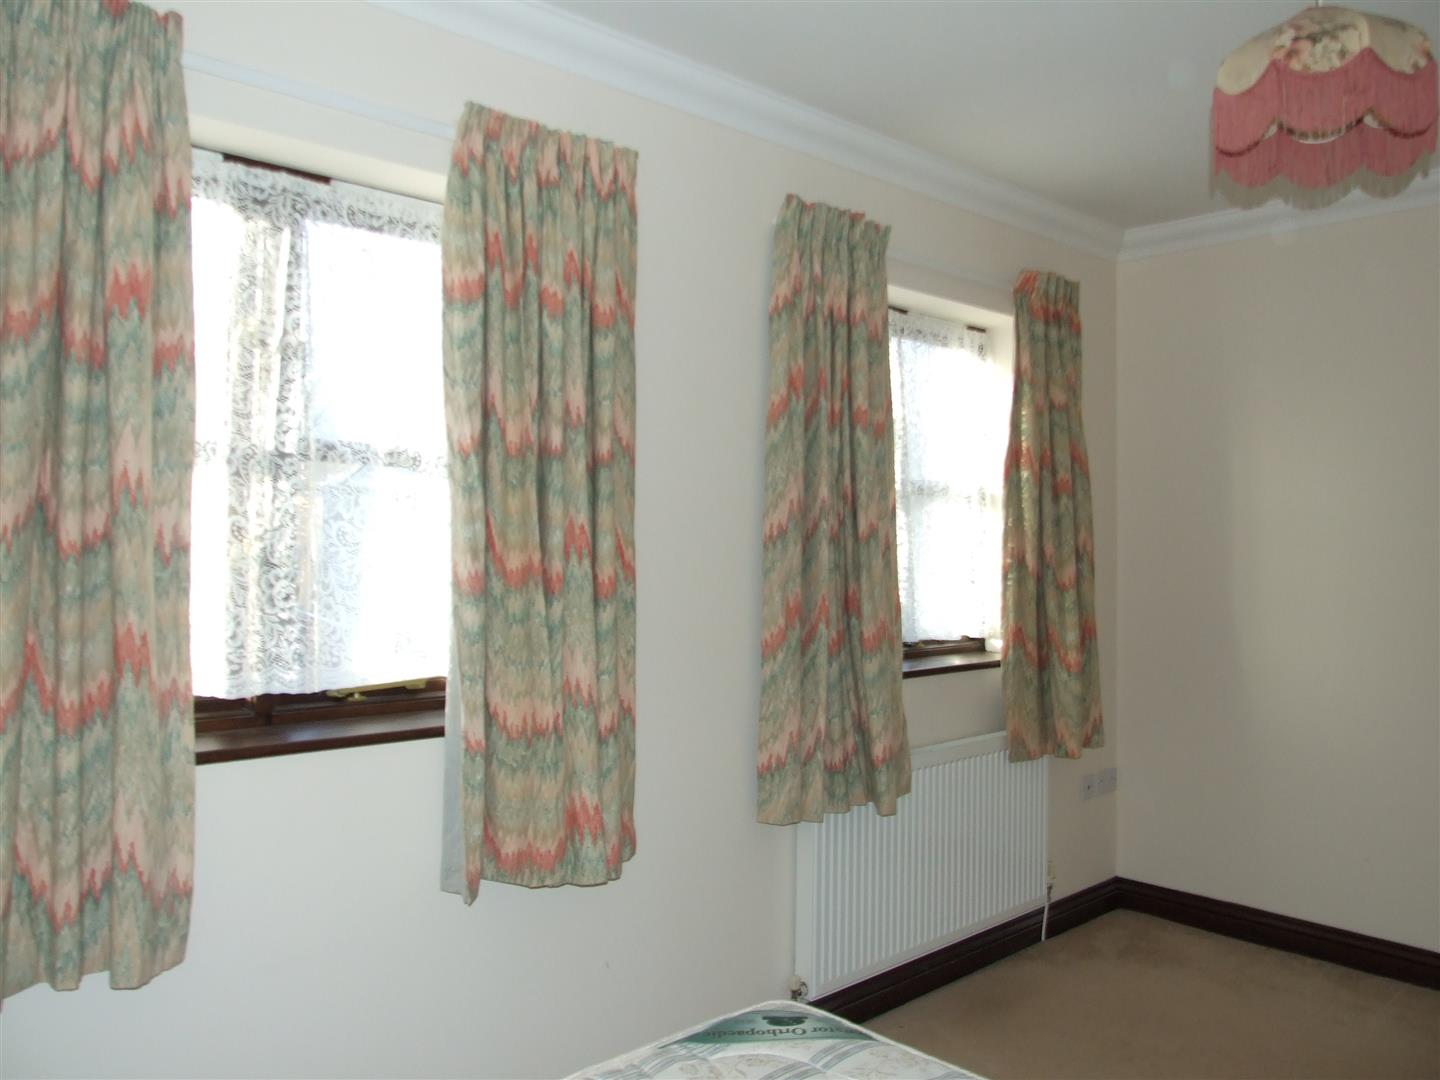 3 bed house to rent in Sutton Bridge Spalding, PE12 9UF  - Property Image 10